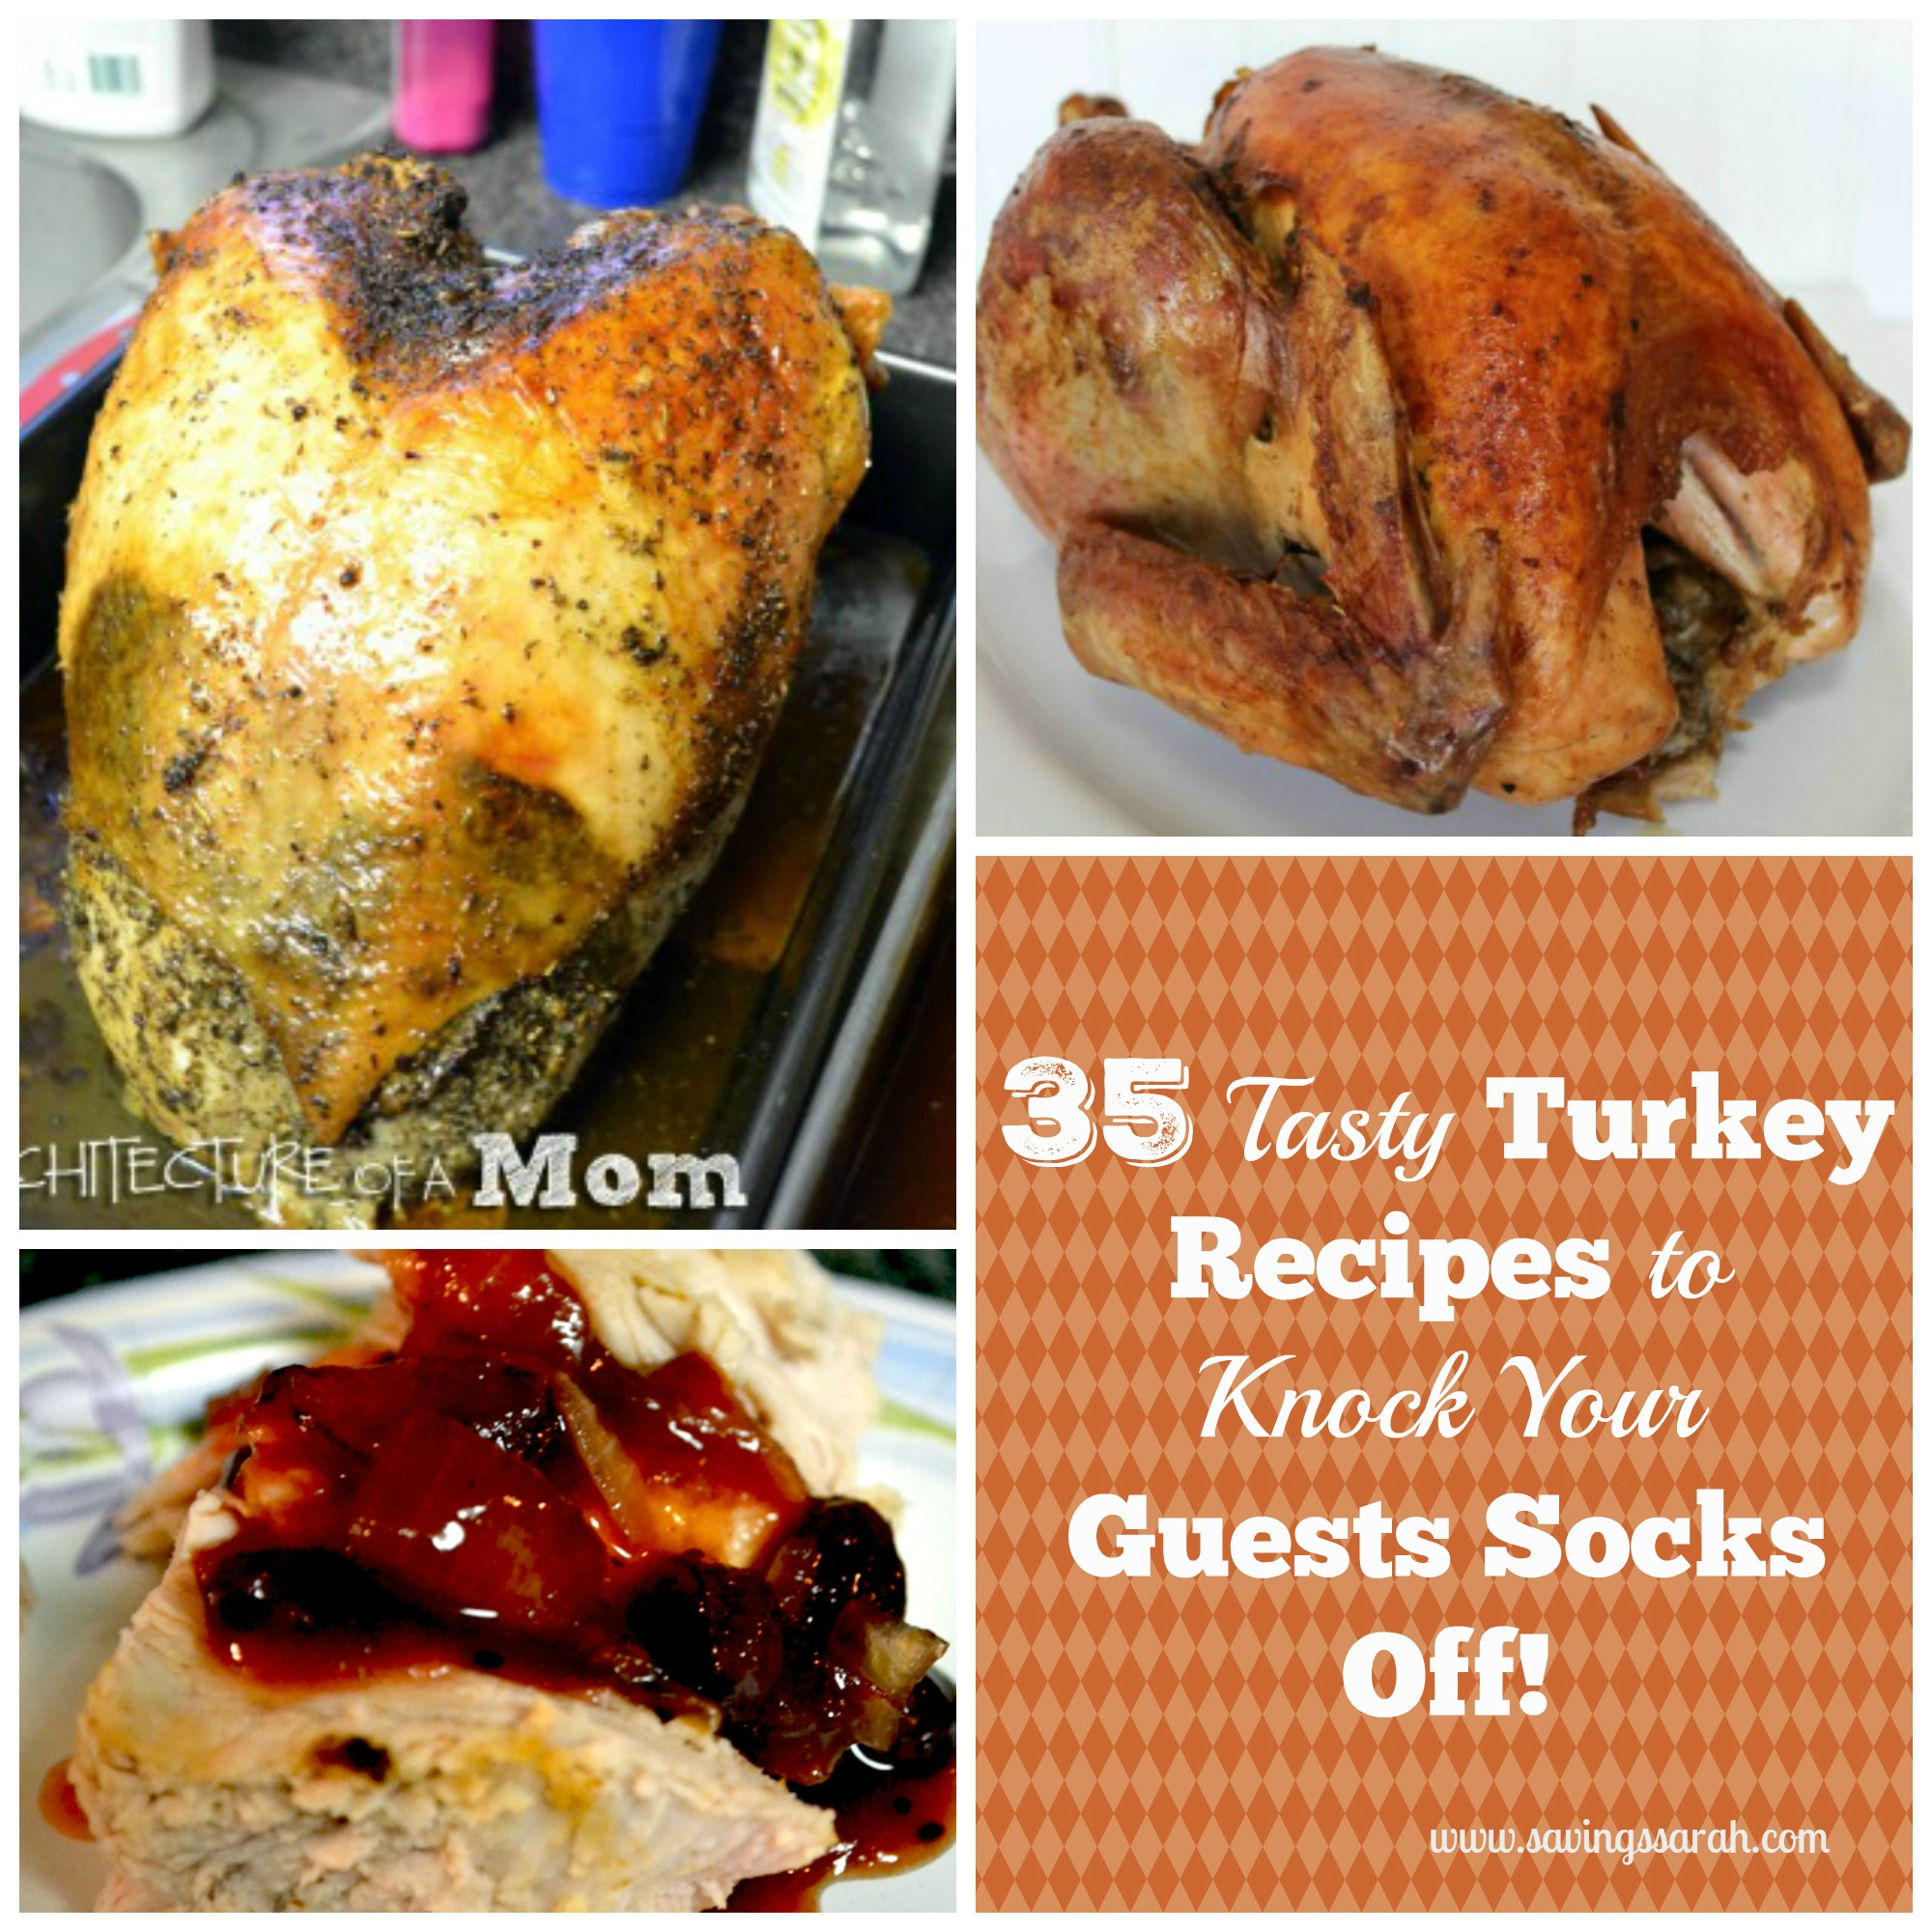 35 Tasty Turkey Recipes to Knock your Guests Socks Off